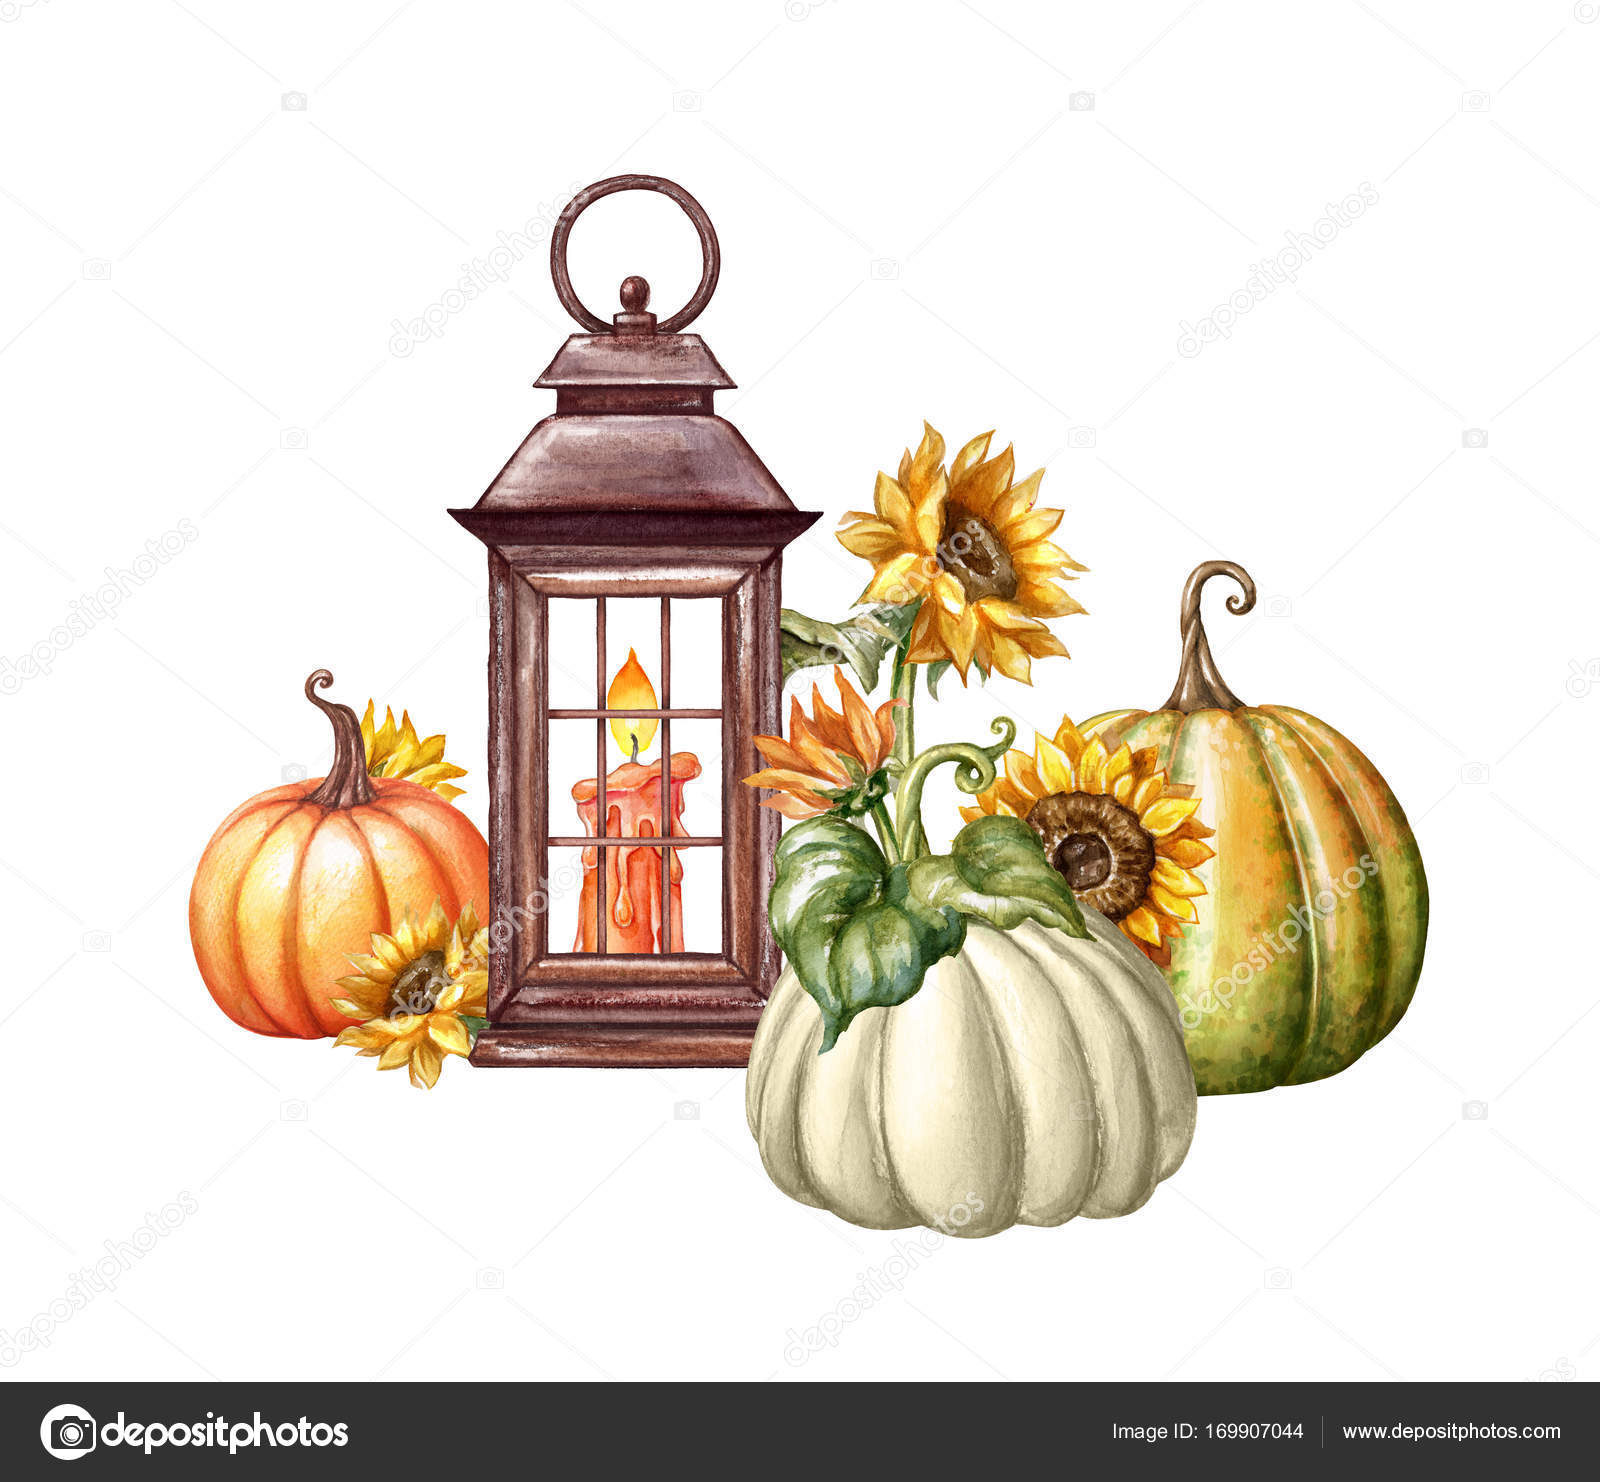 Watercolor Illustration Thanksgiving Flowers Rustic Lantern Autumn Pumpkin Harvest Fall Halloween Holiday Clip Art Isolated On White Background